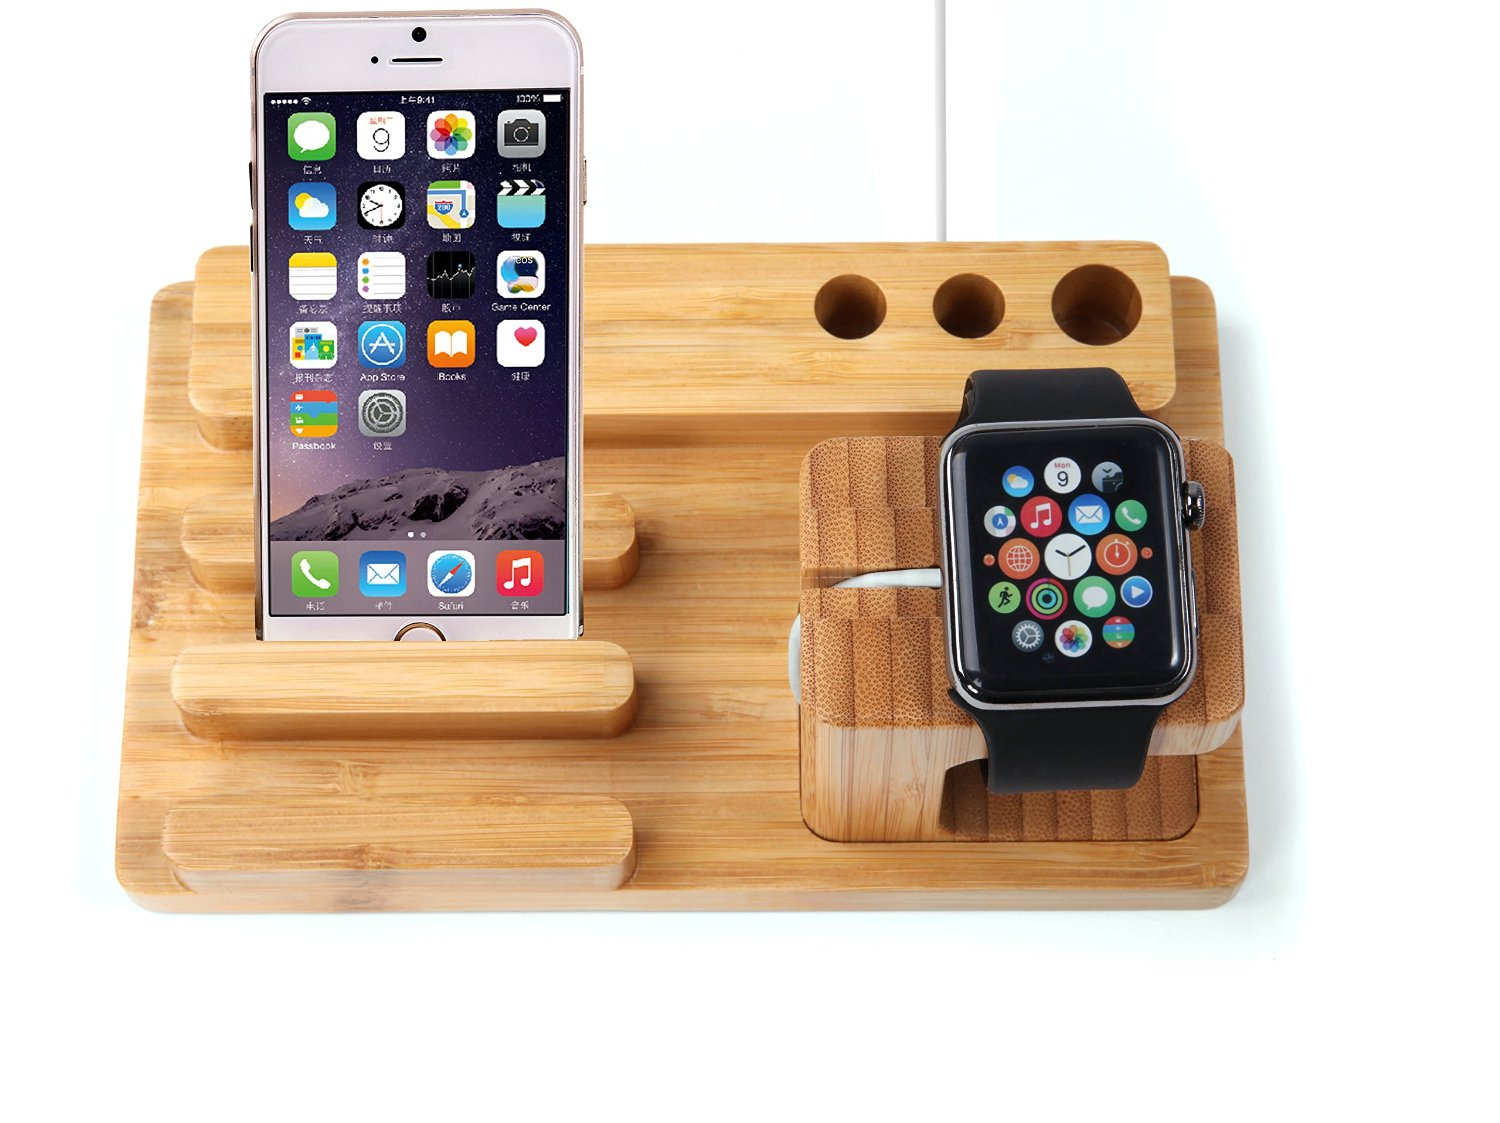 Apple Watch Stand / dock, KuGi High quality Bamboo Wood Charging Stand / holder Bracket Docking Station Stock Cradle Holder For Apple watch 38mm, 42mm and iphone 4 / 5 / 5S / 6 / 7 / 6S / Plus / 5C / 6C. (Bamboo)